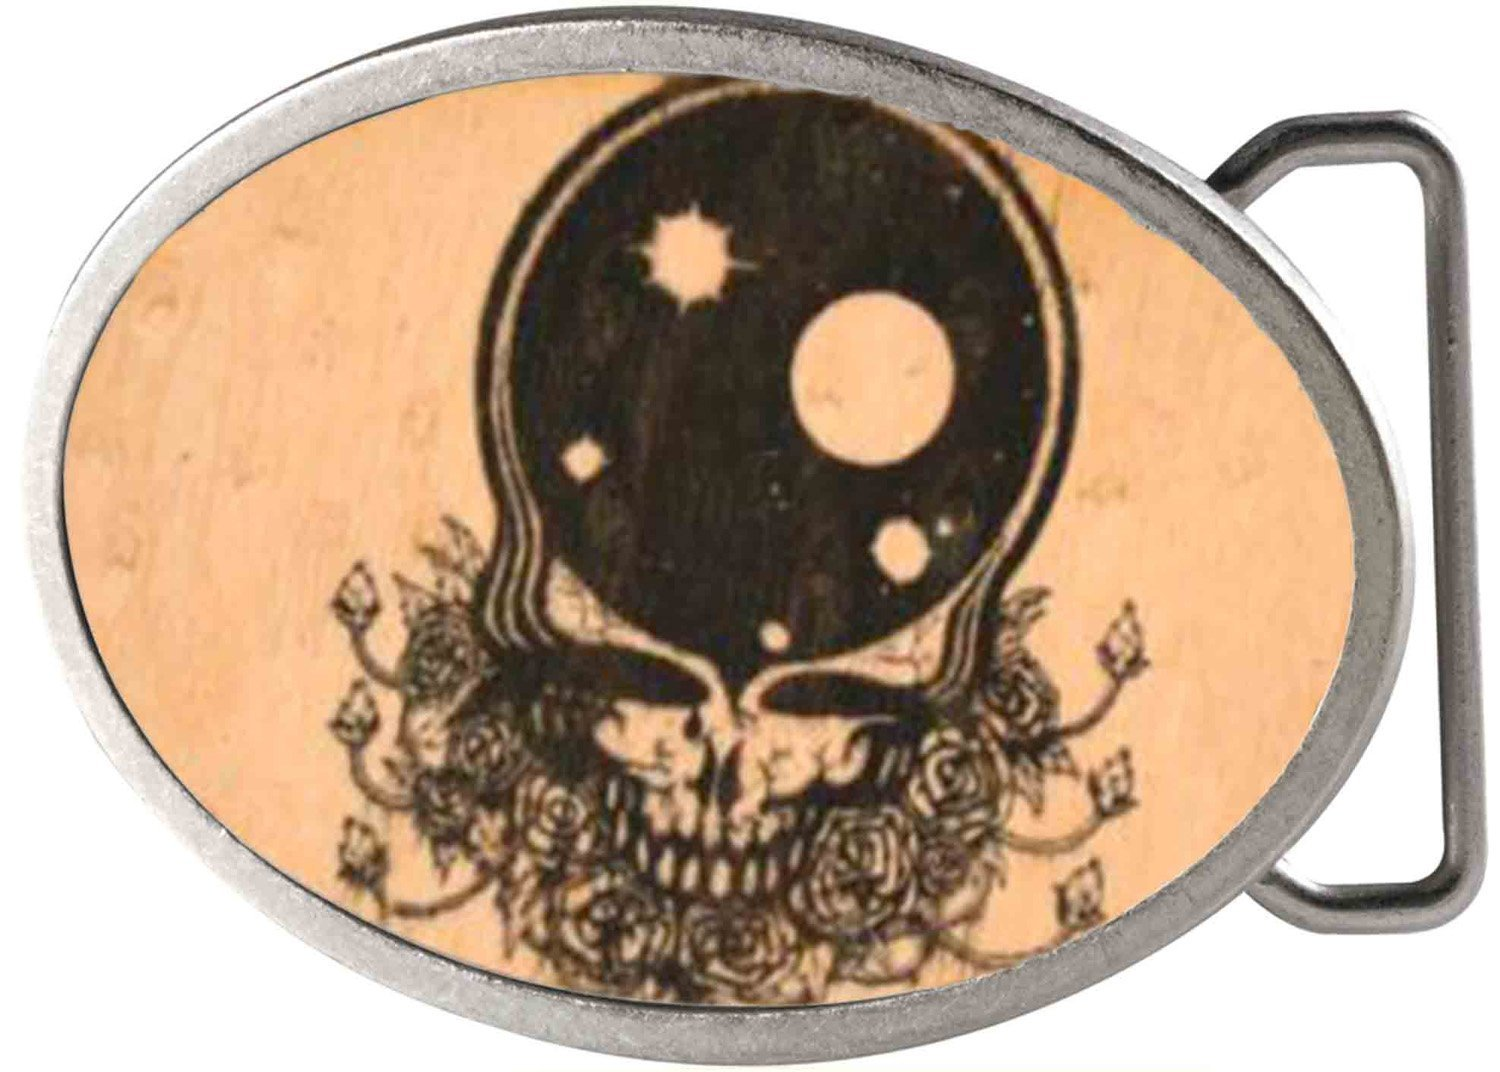 Grateful Dead Psychedelic Rock Band Wooden Galactic Skull Rockstar Belt Buckle Buckle Down